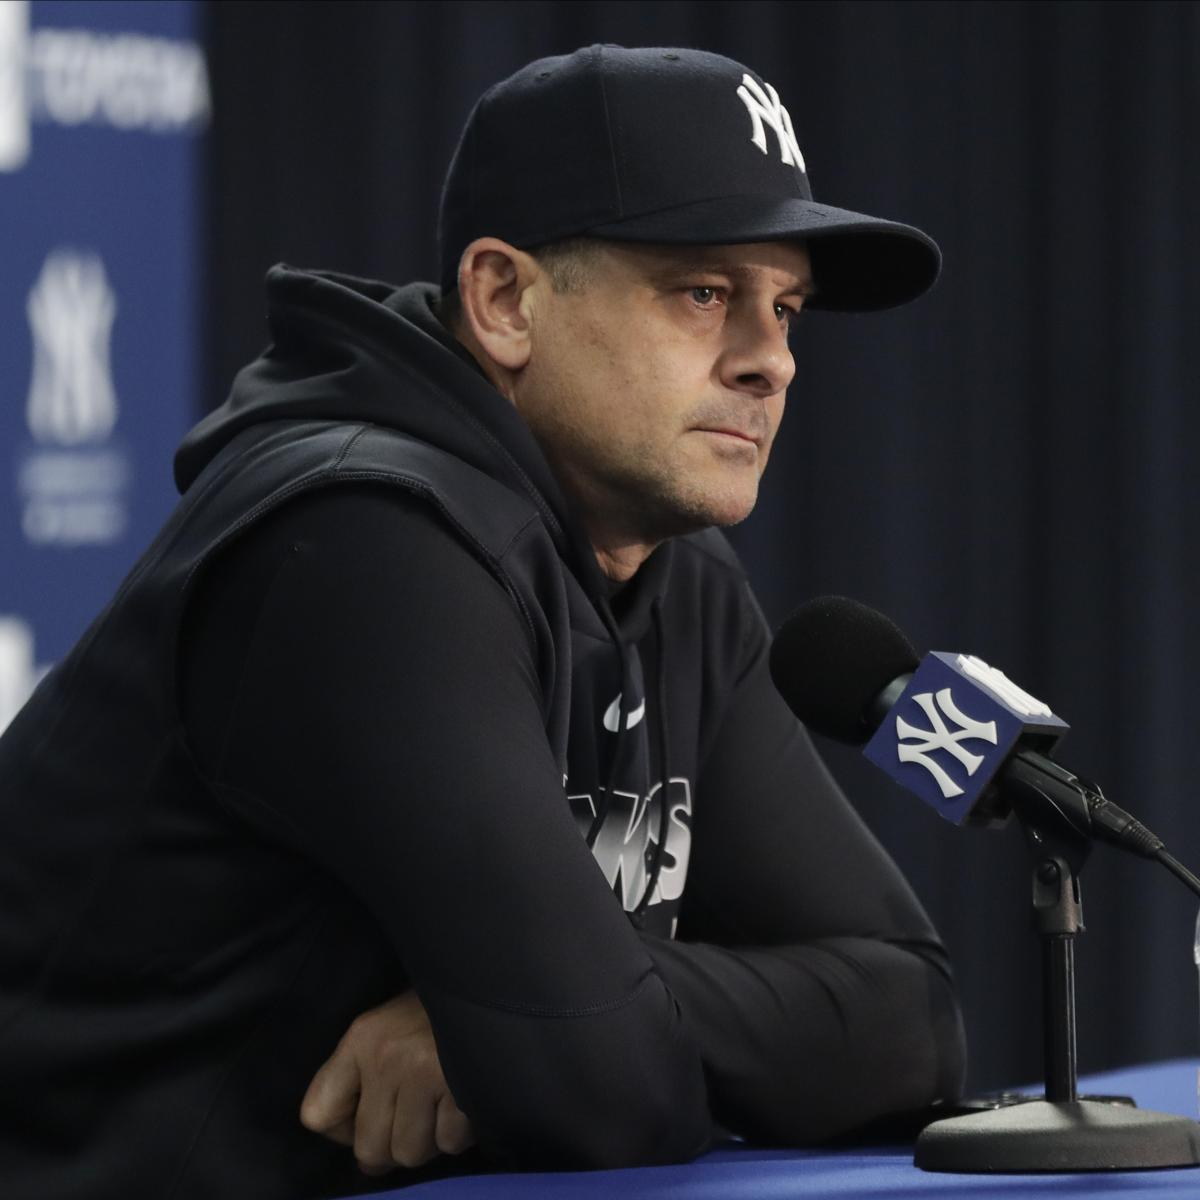 Yankees' Aaron Boone Taking Leave of Absence After Surgery for Pacemaker